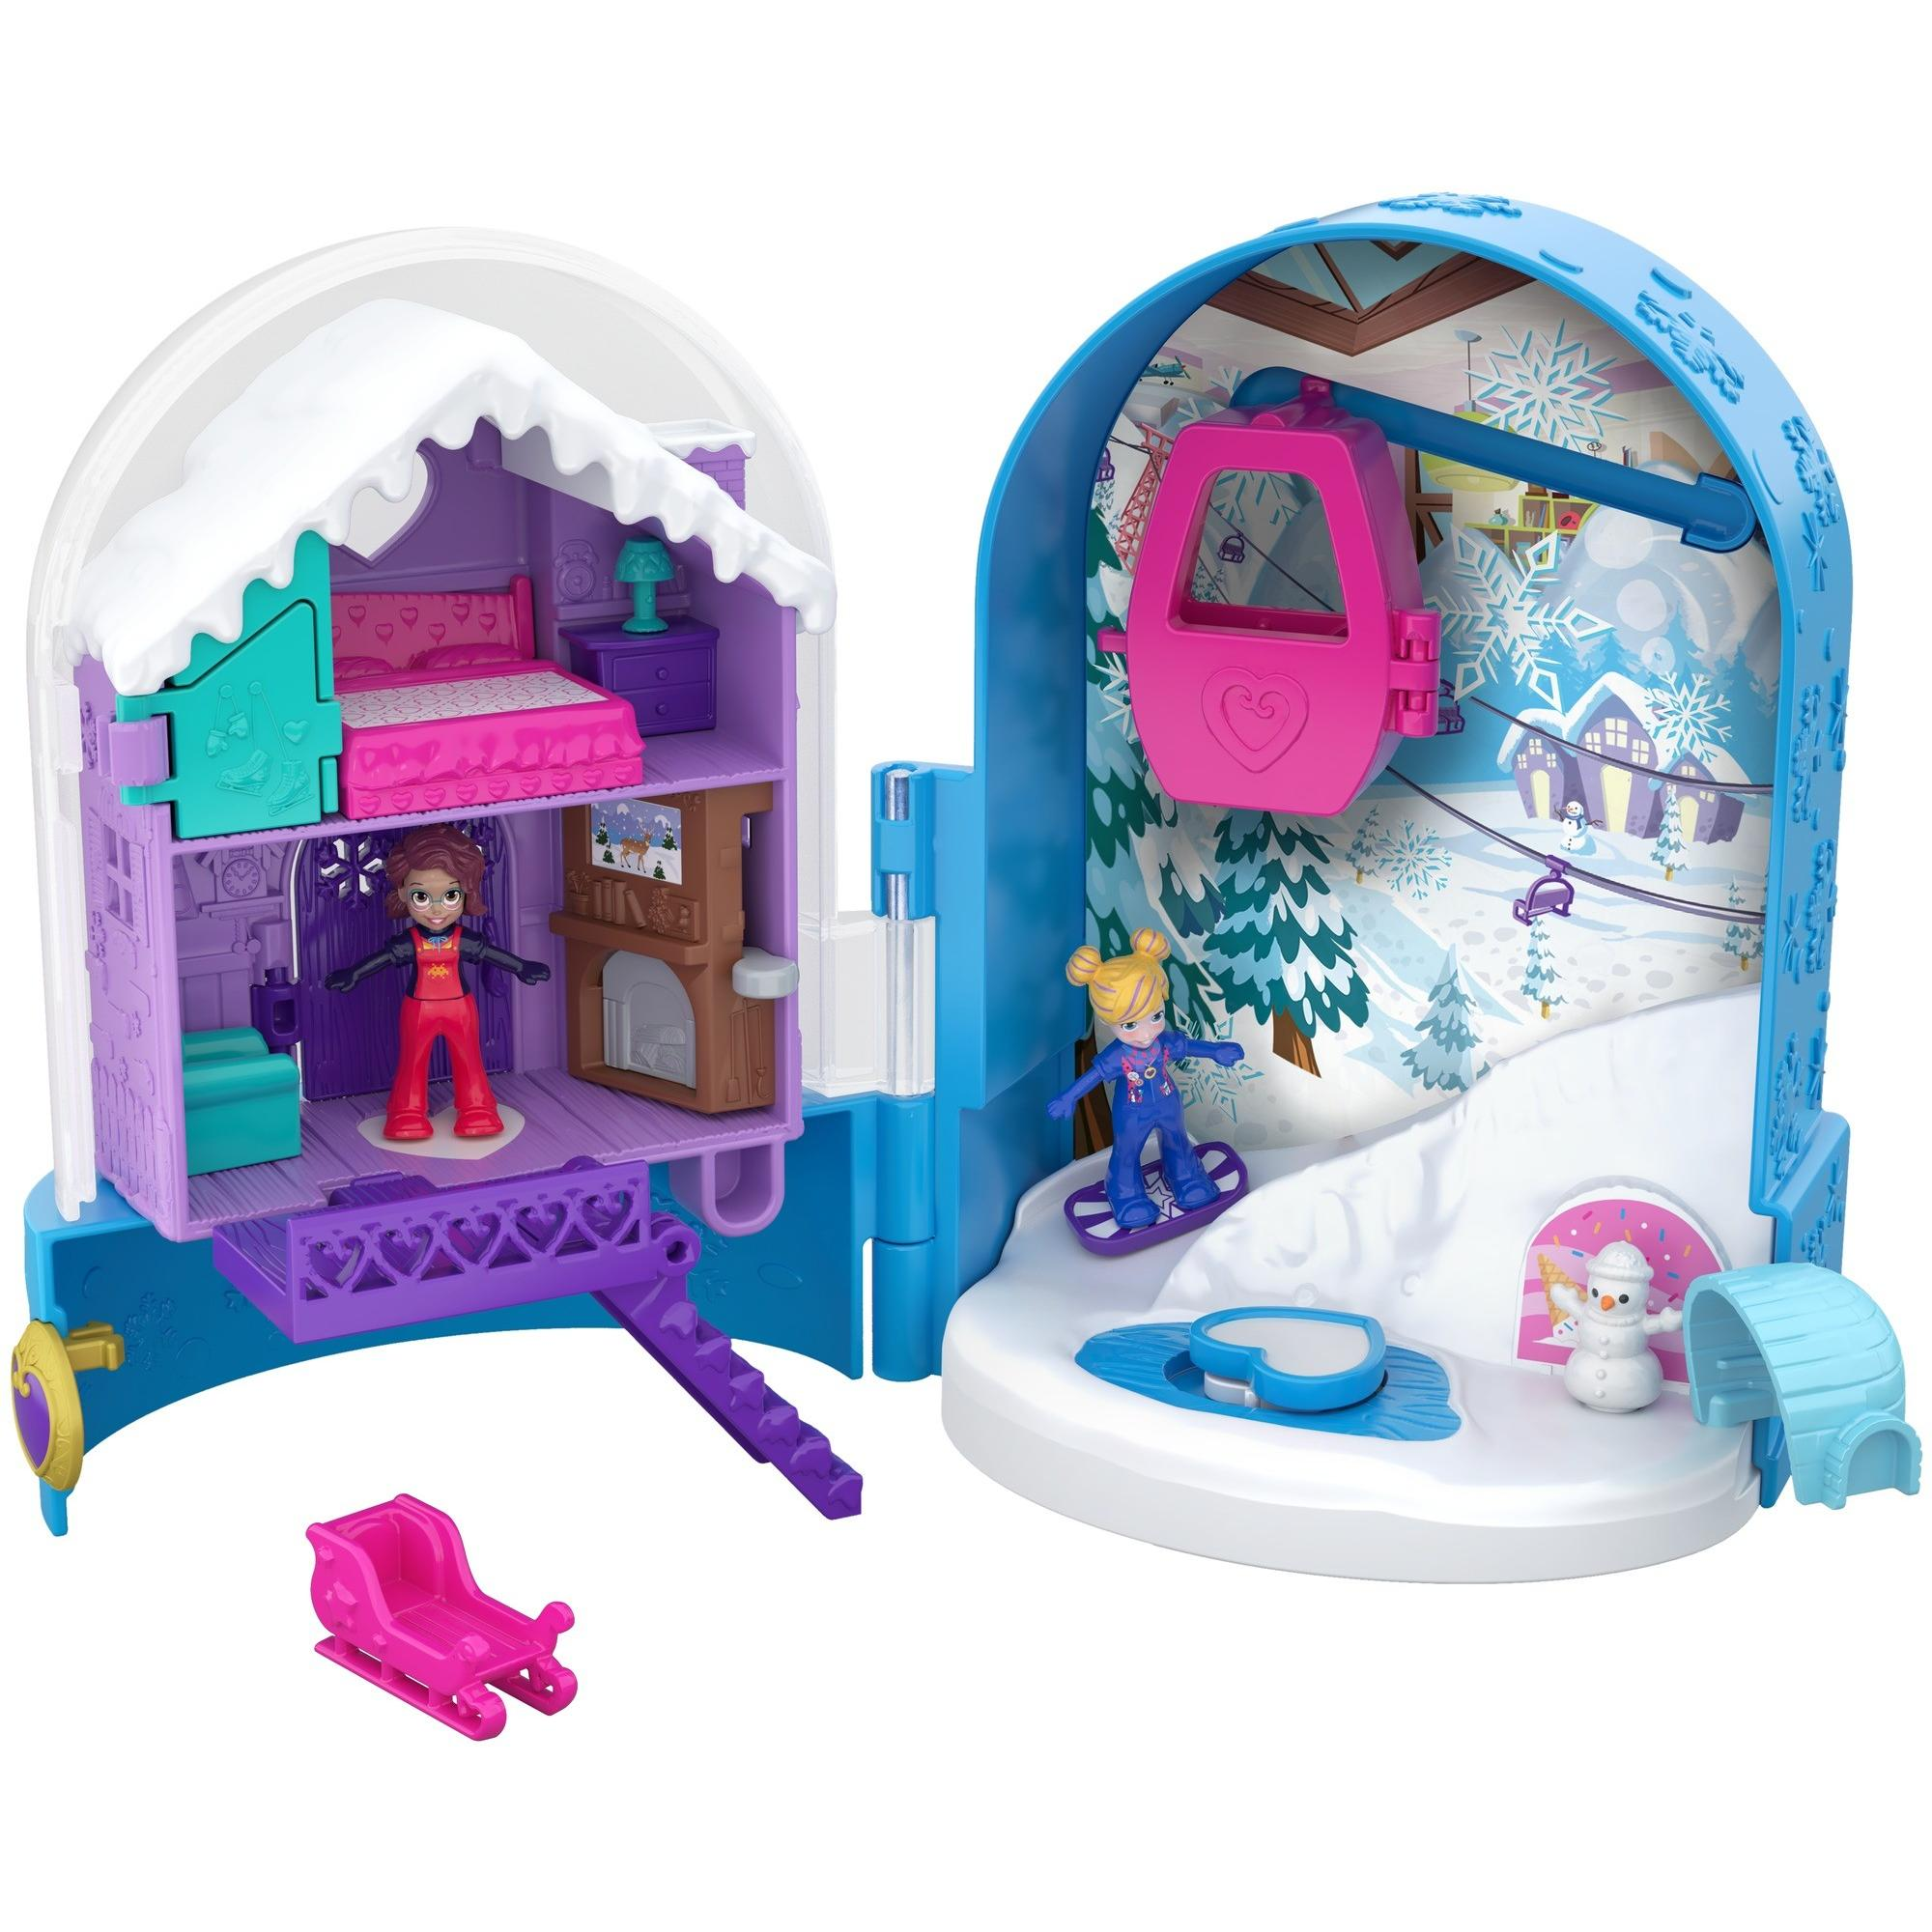 Polly Pocket Pocket World Snow Secret Surprise Compact with Snowboard Dolls